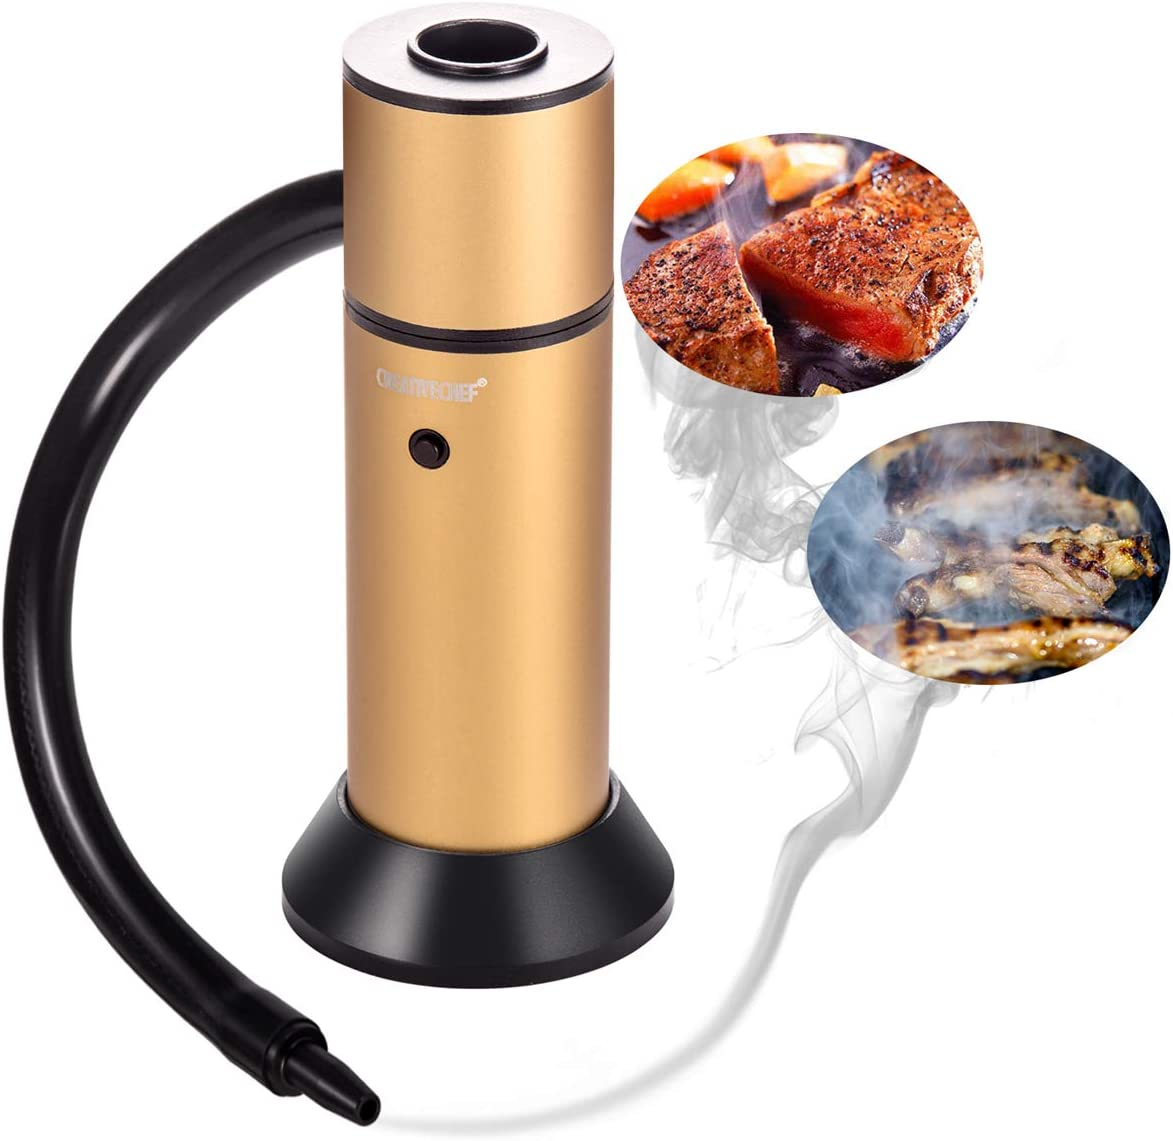 TMKEFFC Smoker Gun Smoke Infuser Food Smoker Meat Salmon Sausage Meat Smoker Hand-held Portable +Smoking Wood Chips for Smoking Food on BBQ